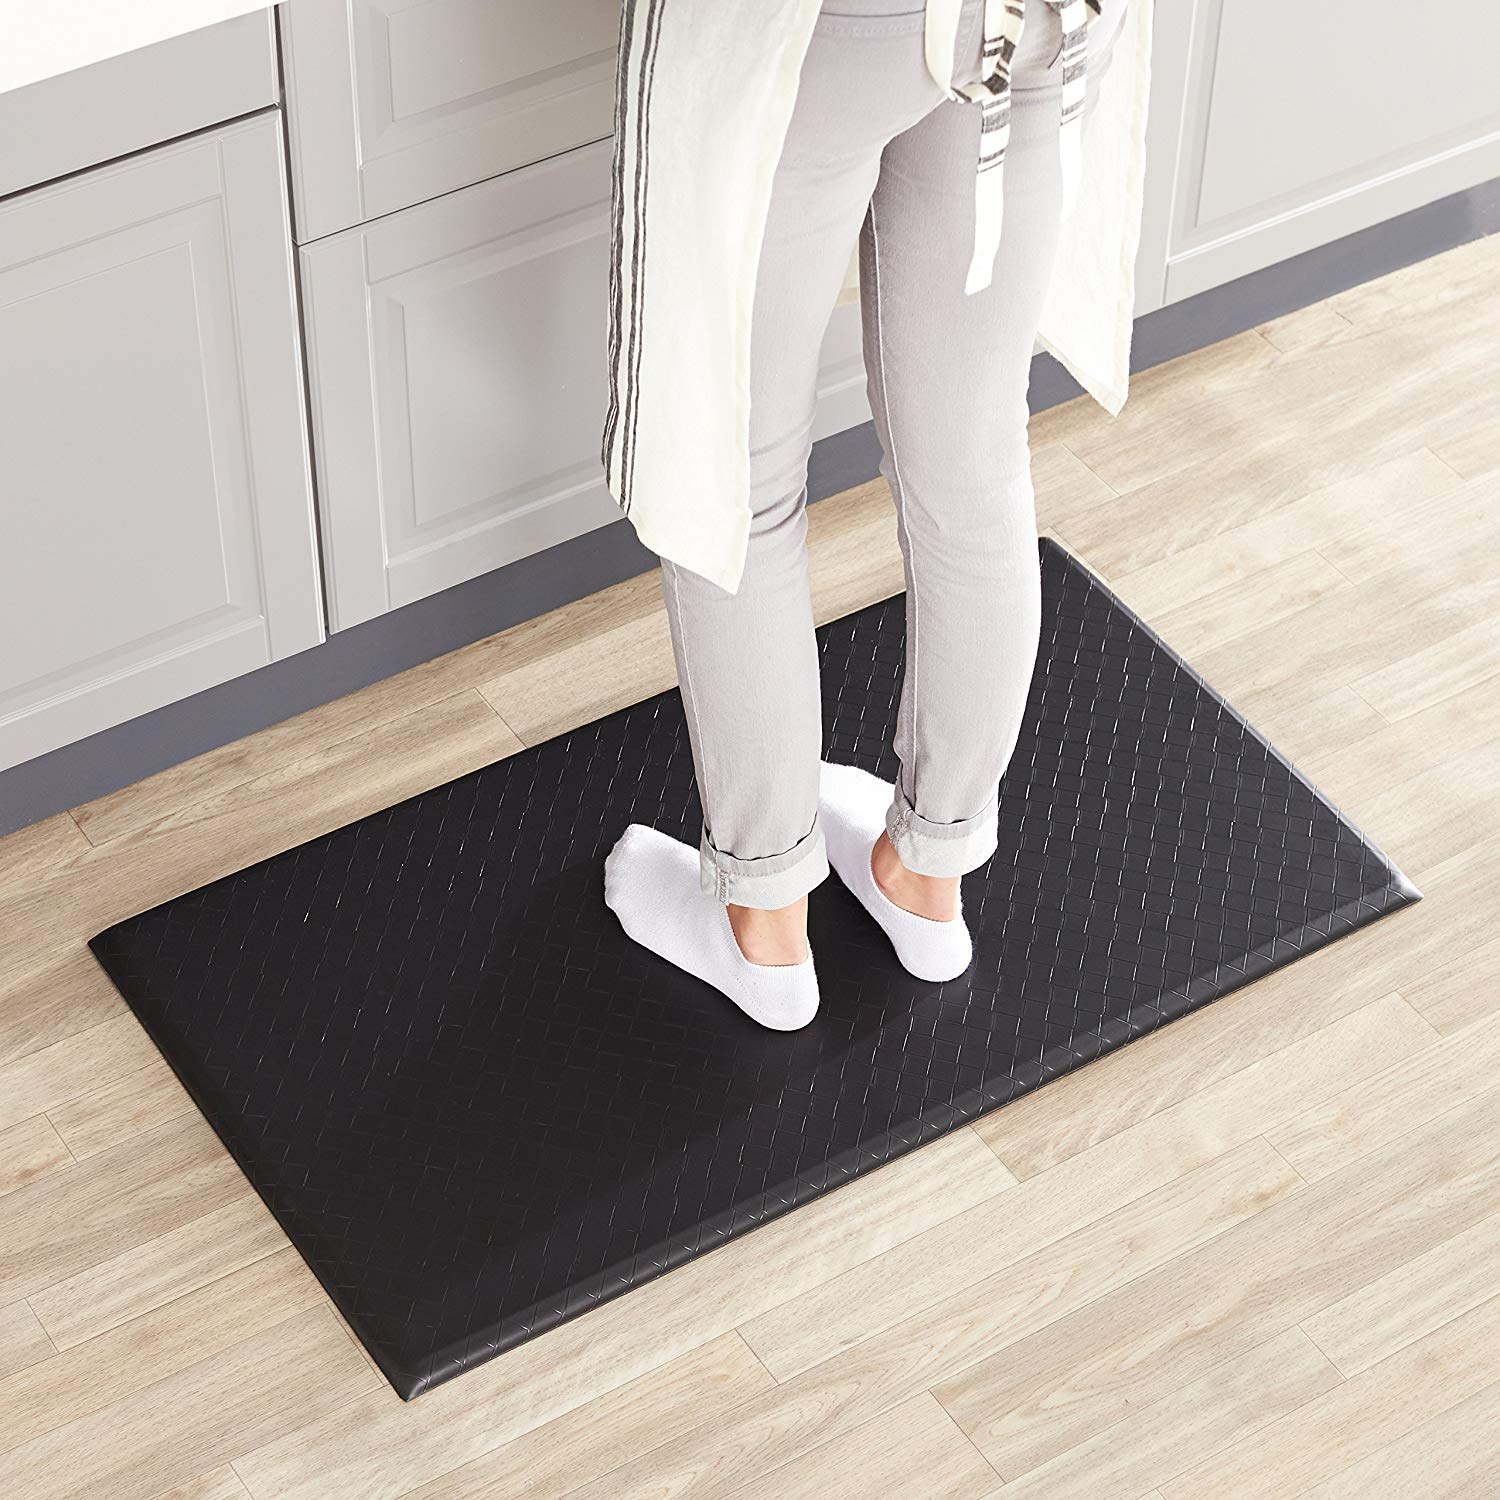 Back To Basics Kitchen: Best Kitchen Mat To Help With Back Problems: Reader Q&A